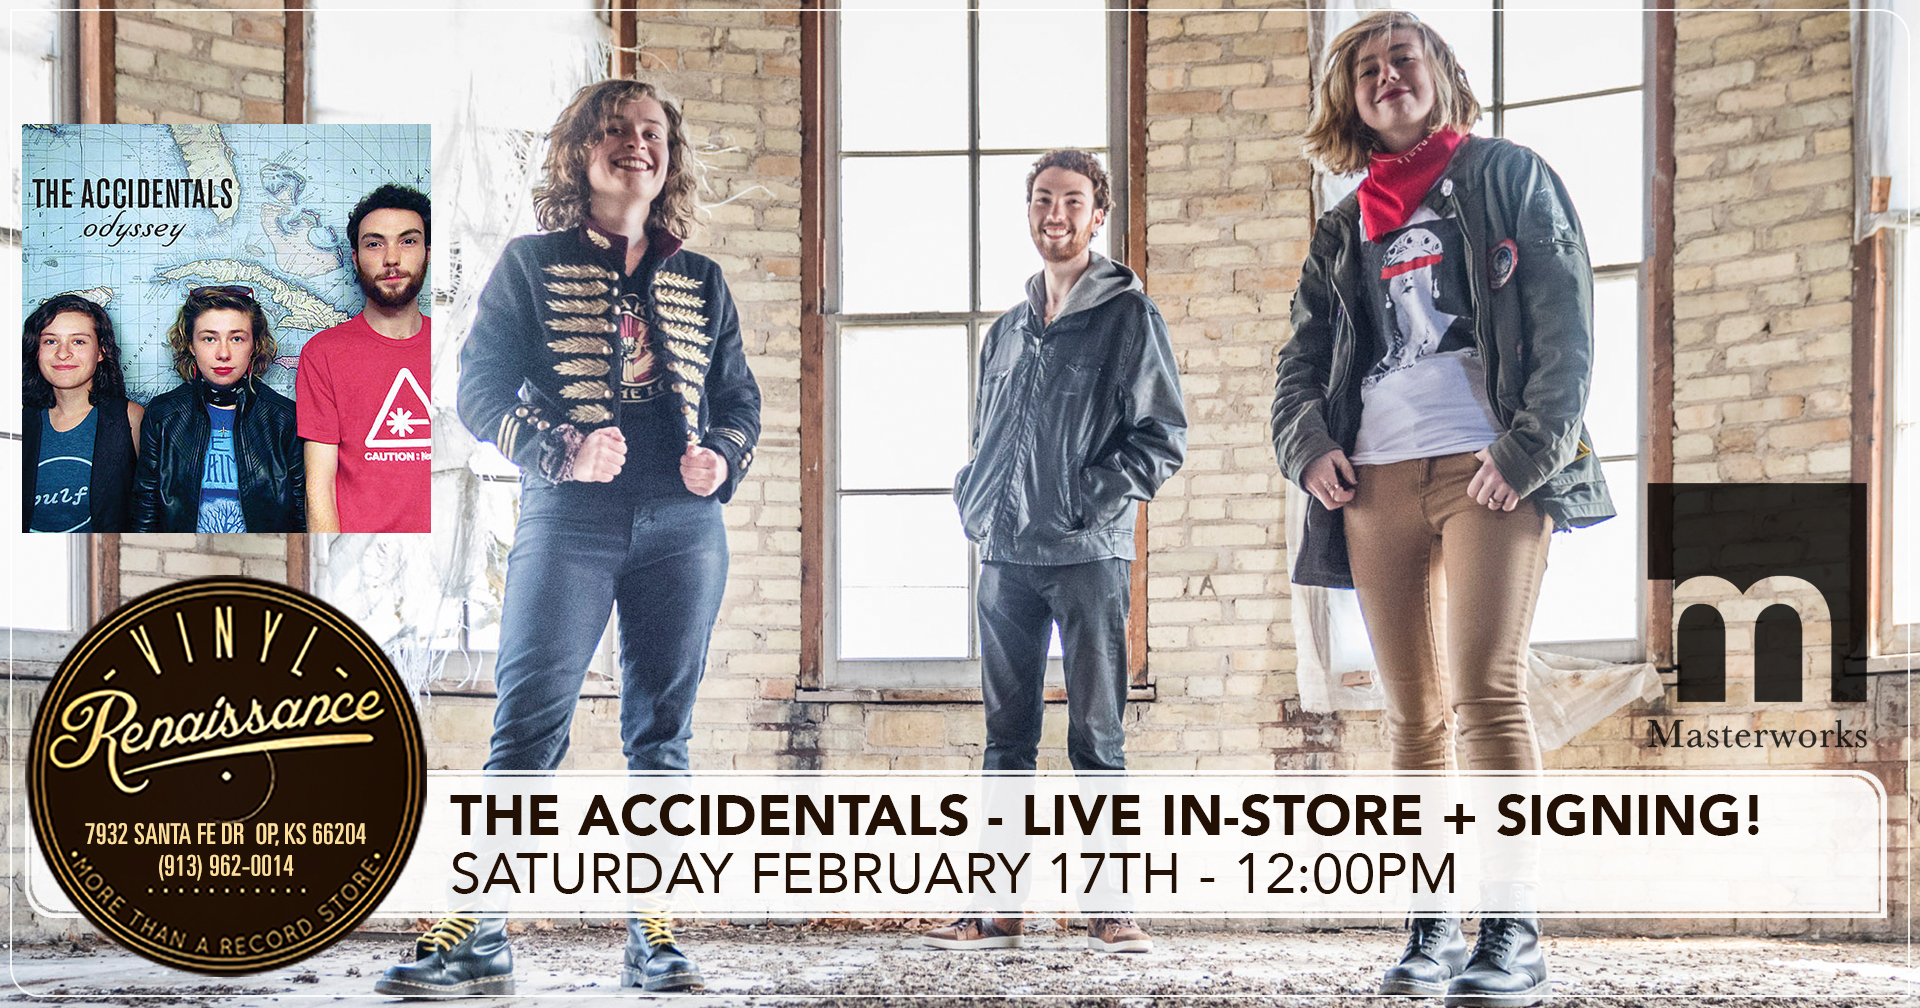 The Accidentals - Live In-Store + Signing!